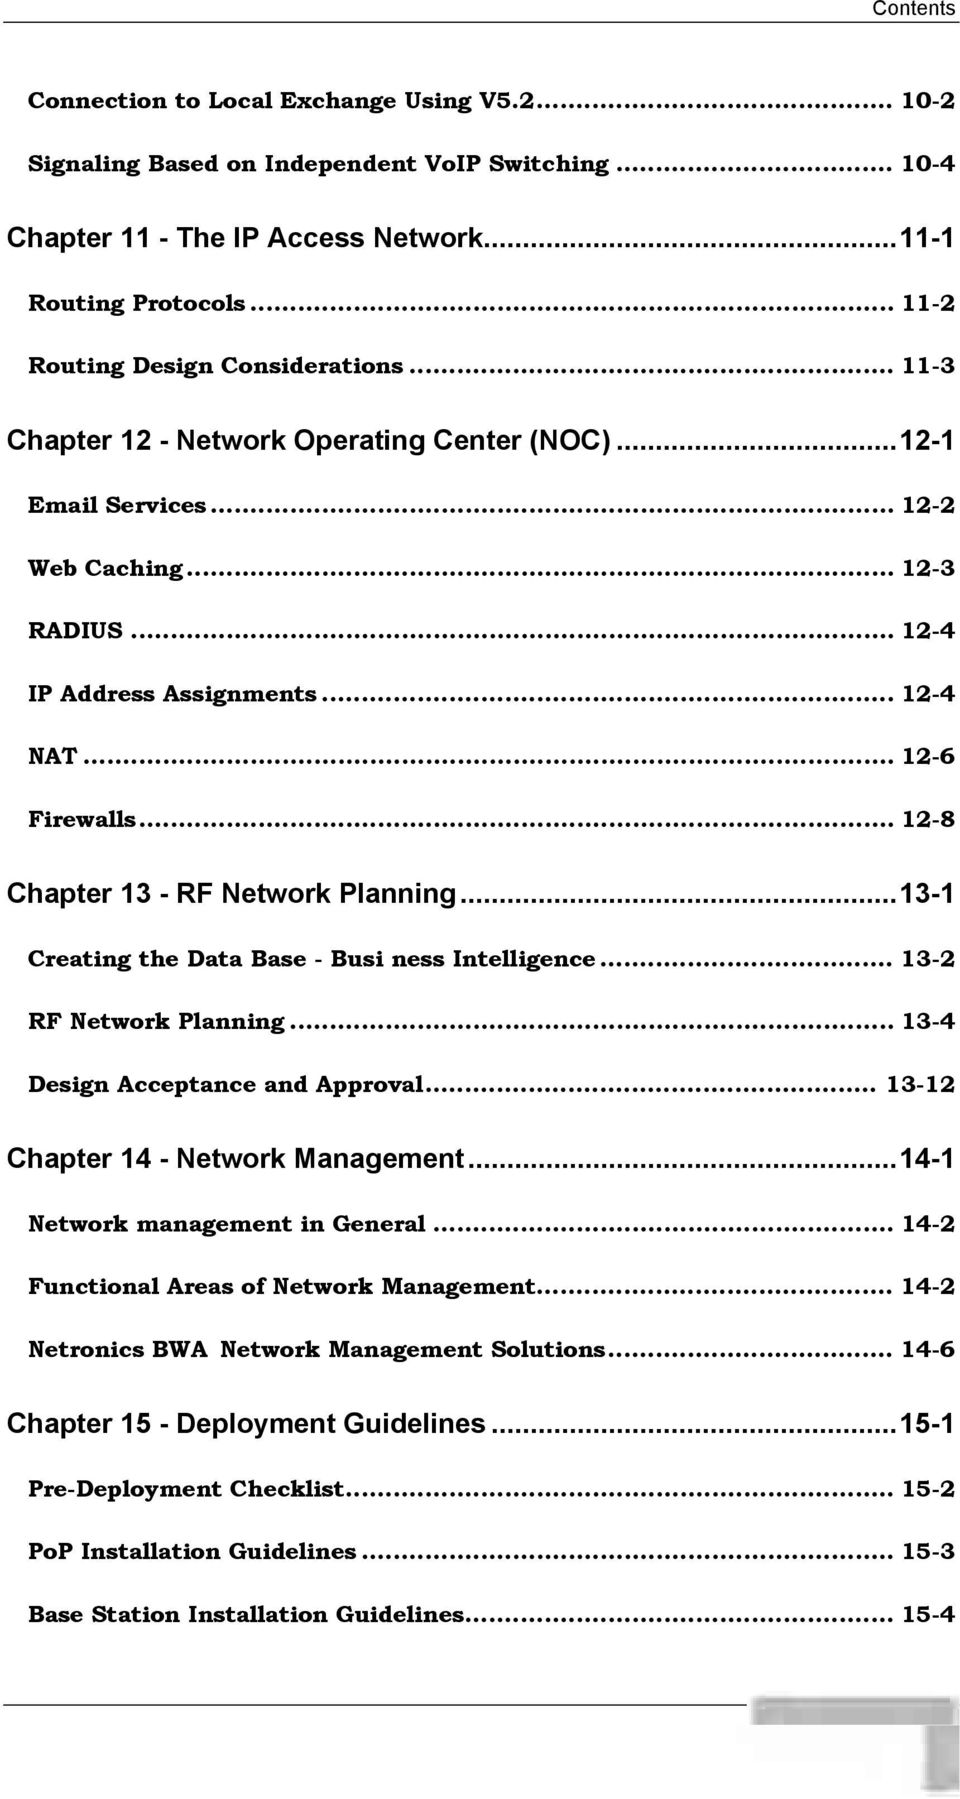 .. 12-6 Firewalls... 12-8 Chapter 13 - RF Network Planning...13-1 Creating the Data Base - Busi ness Intelligence... 13-2 RF Network Planning... 13-4 Design Acceptance and Approval.